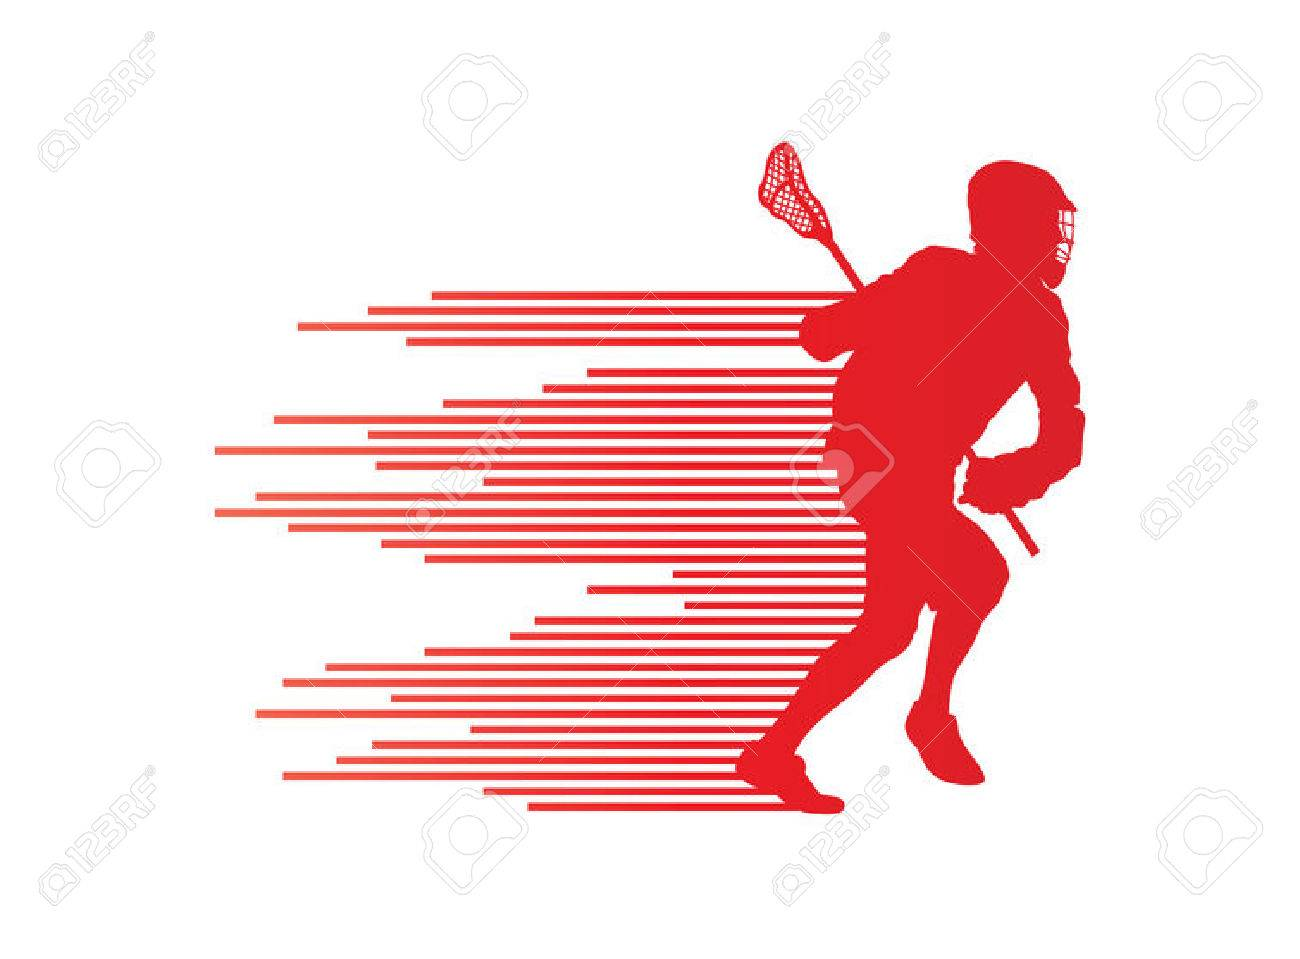 Lacrosse player in action vector background concept made of stripes for poster - 28371640